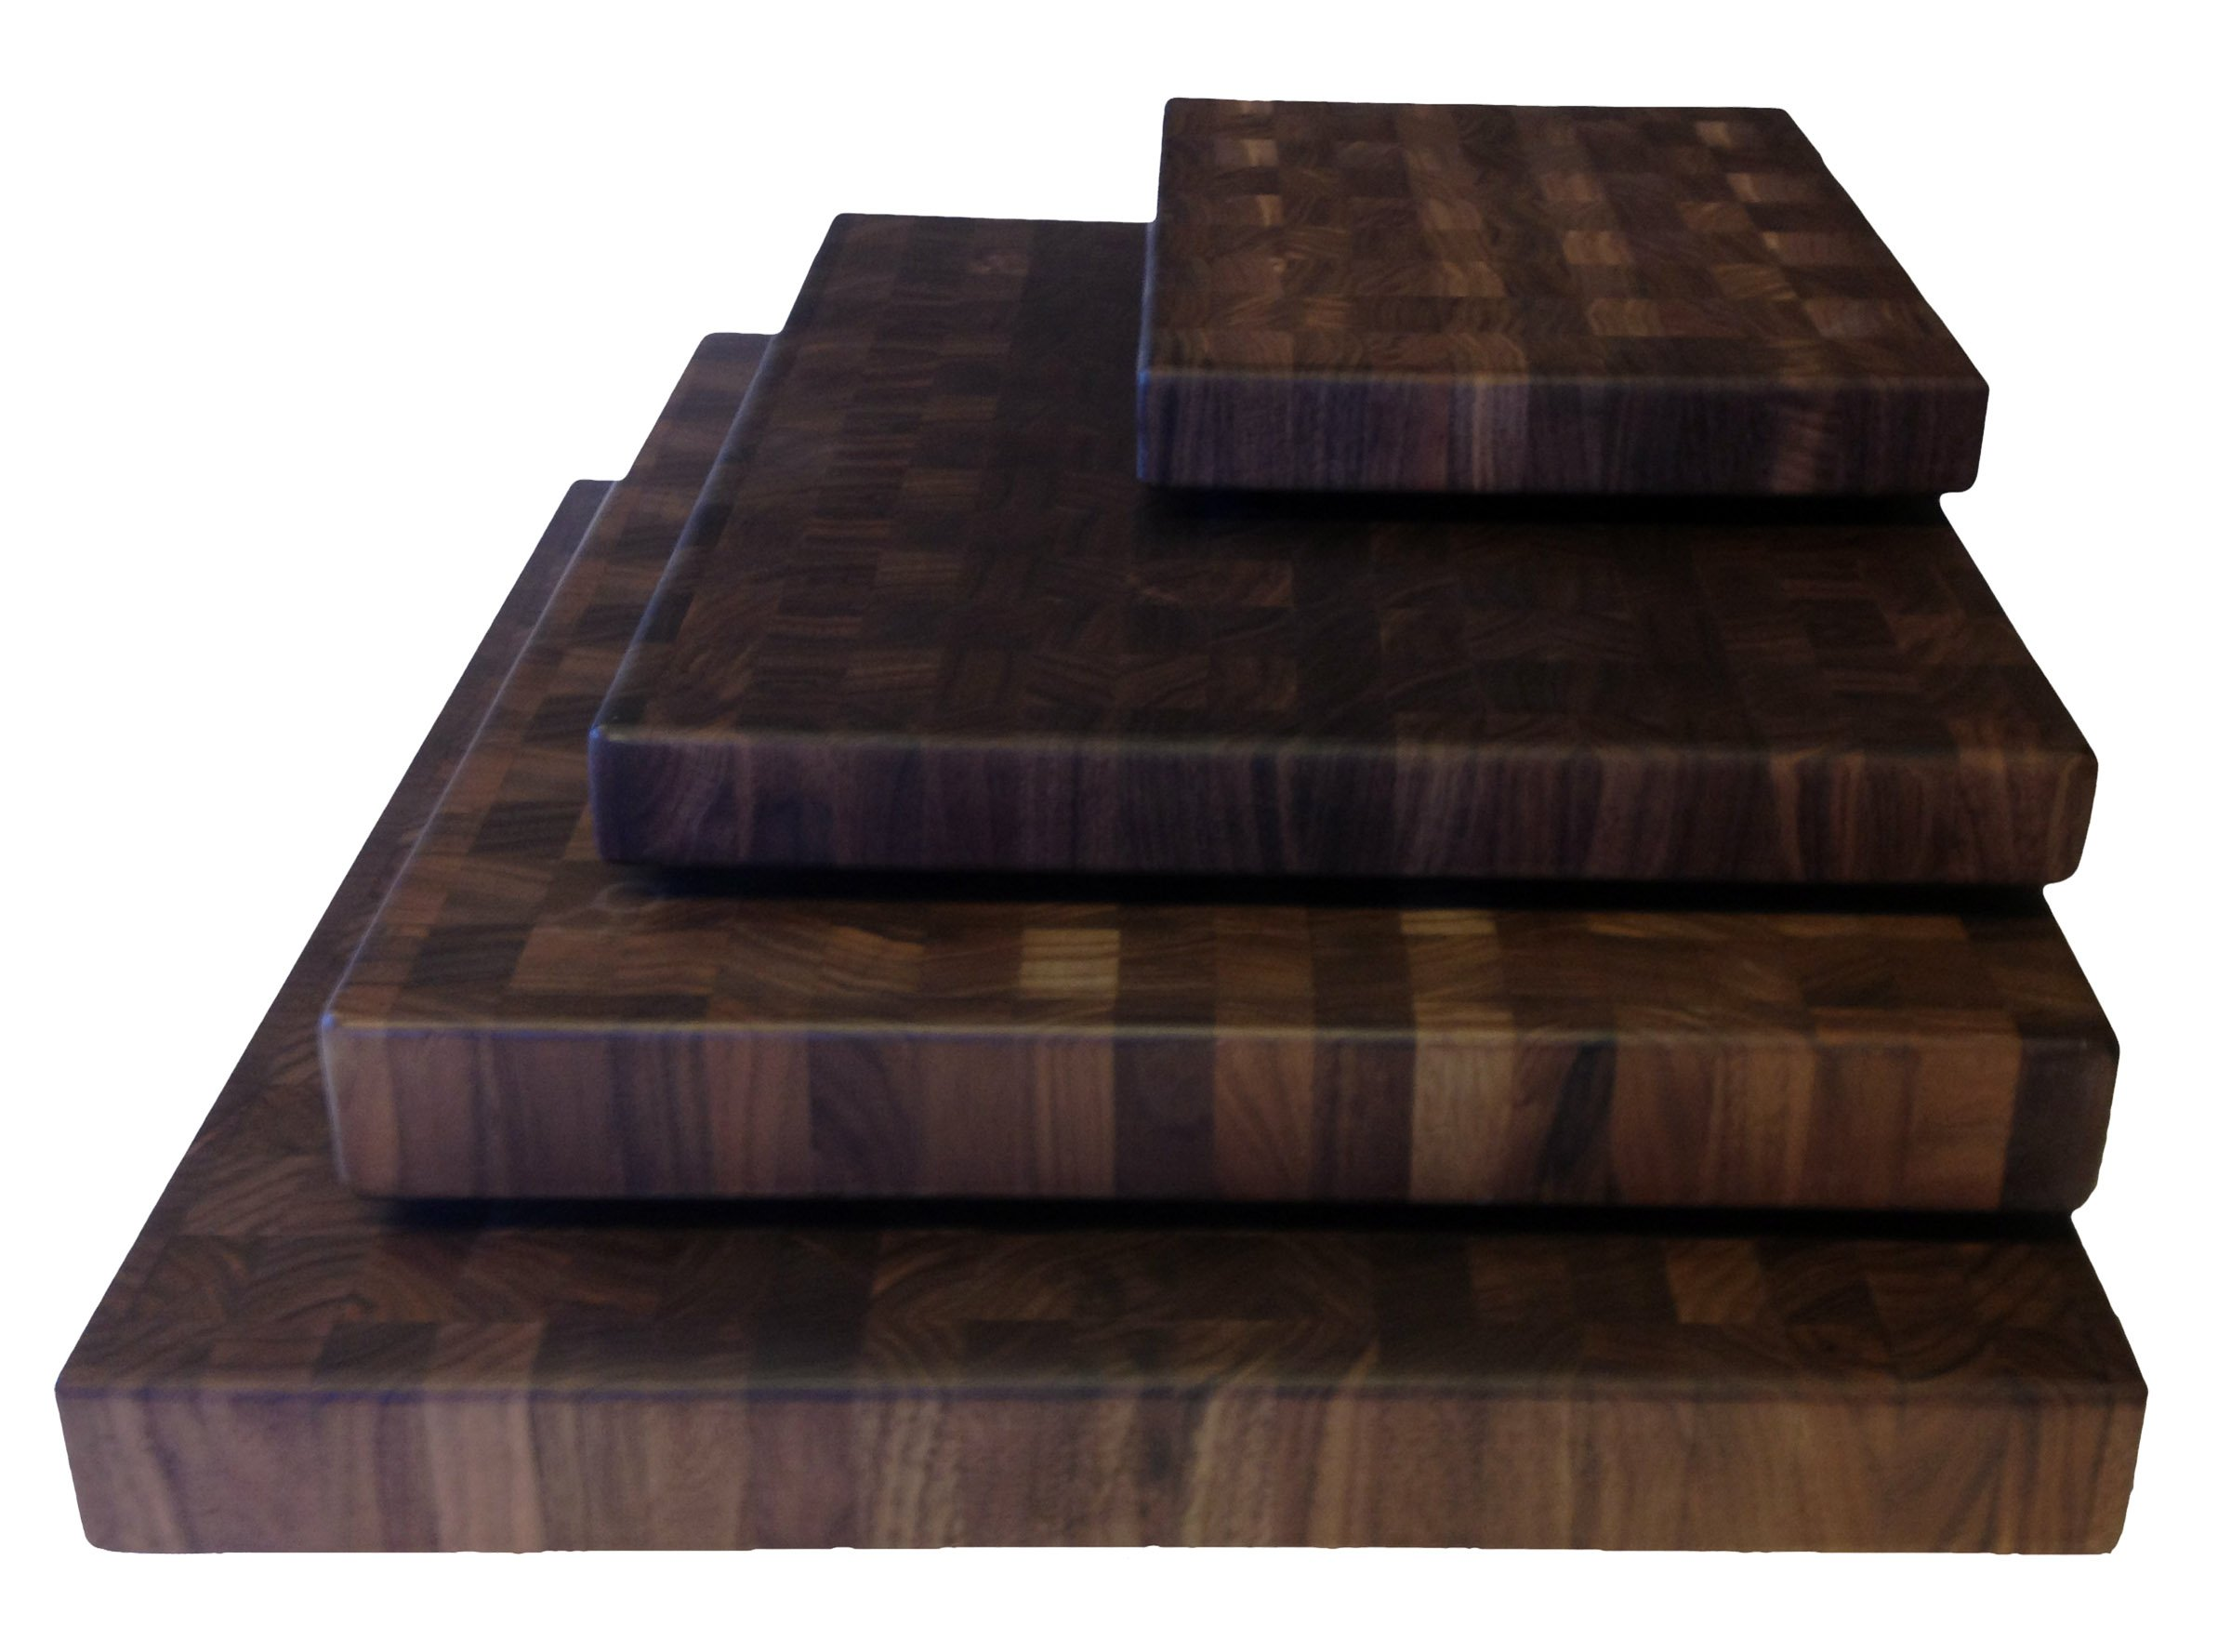 Walnut Cutting Boards End Grain Hardwood Butchers Chopping Block Size: Small 9x12 inch